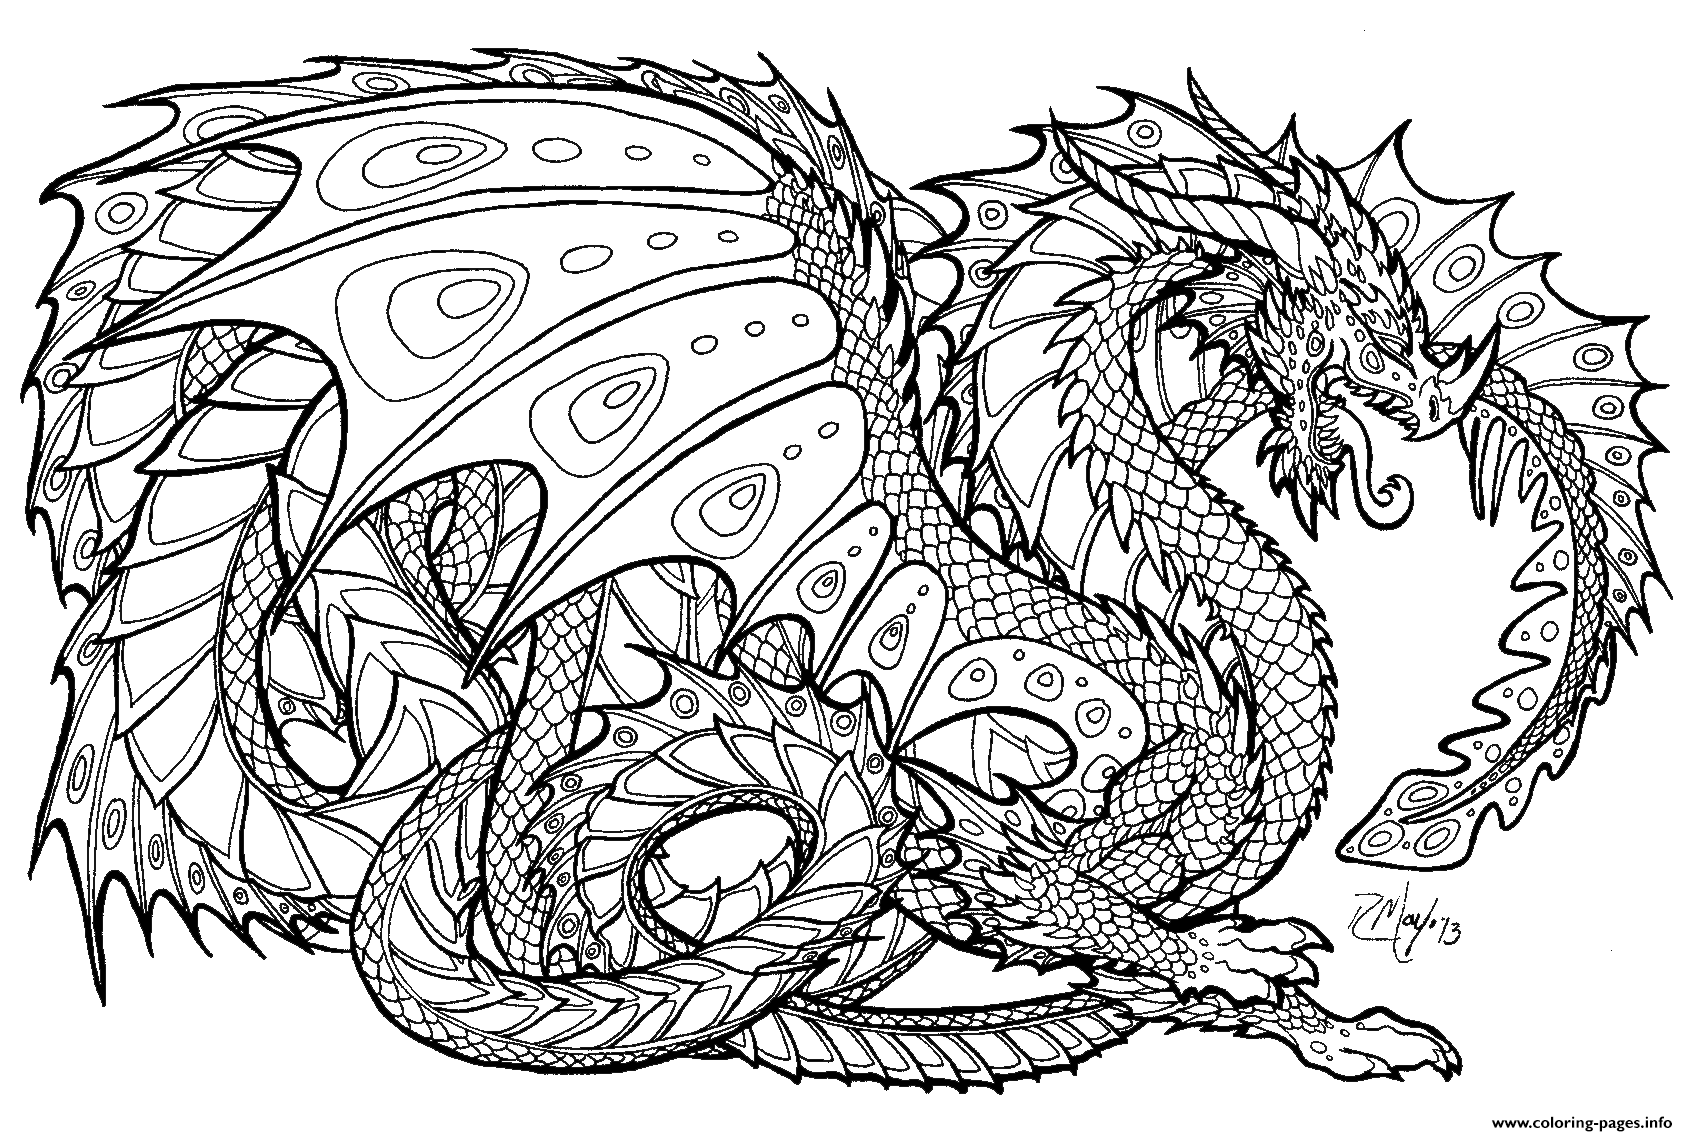 Realistic Dragon Chinese Coloring Pages Print Download 356 Prints